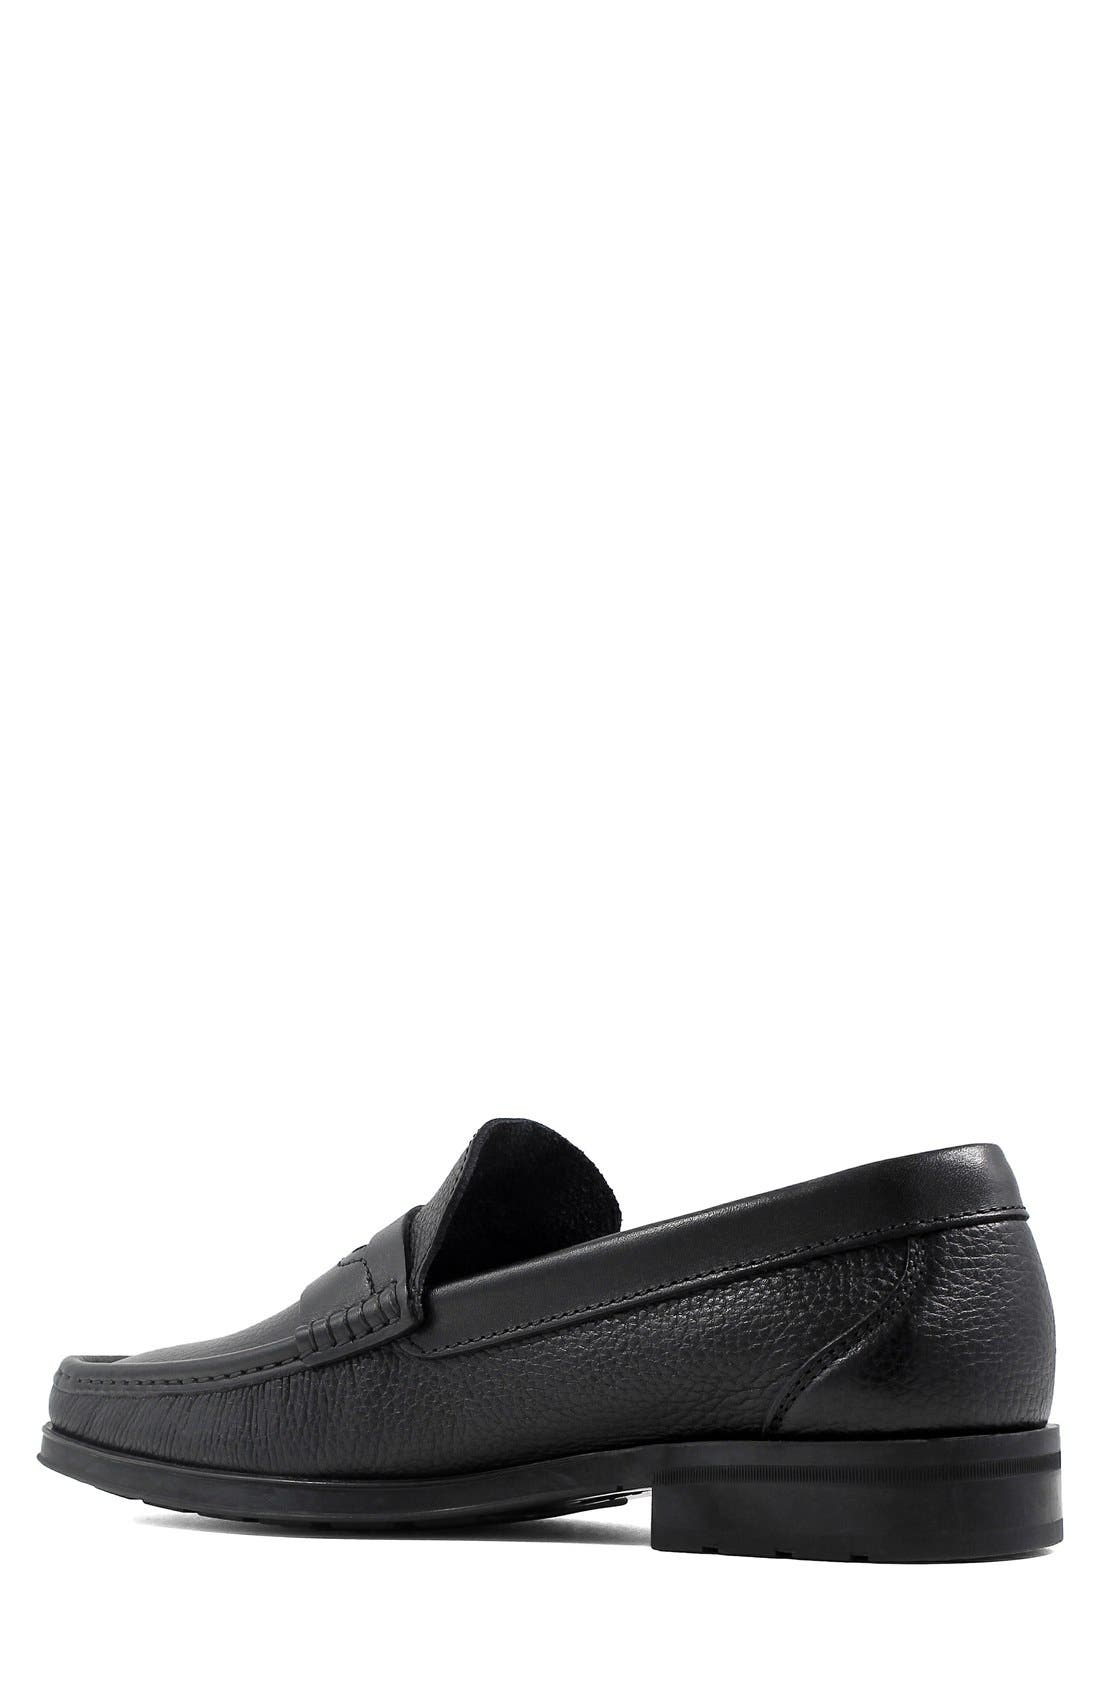 Westbrook Penny Loafer,                             Alternate thumbnail 16, color,